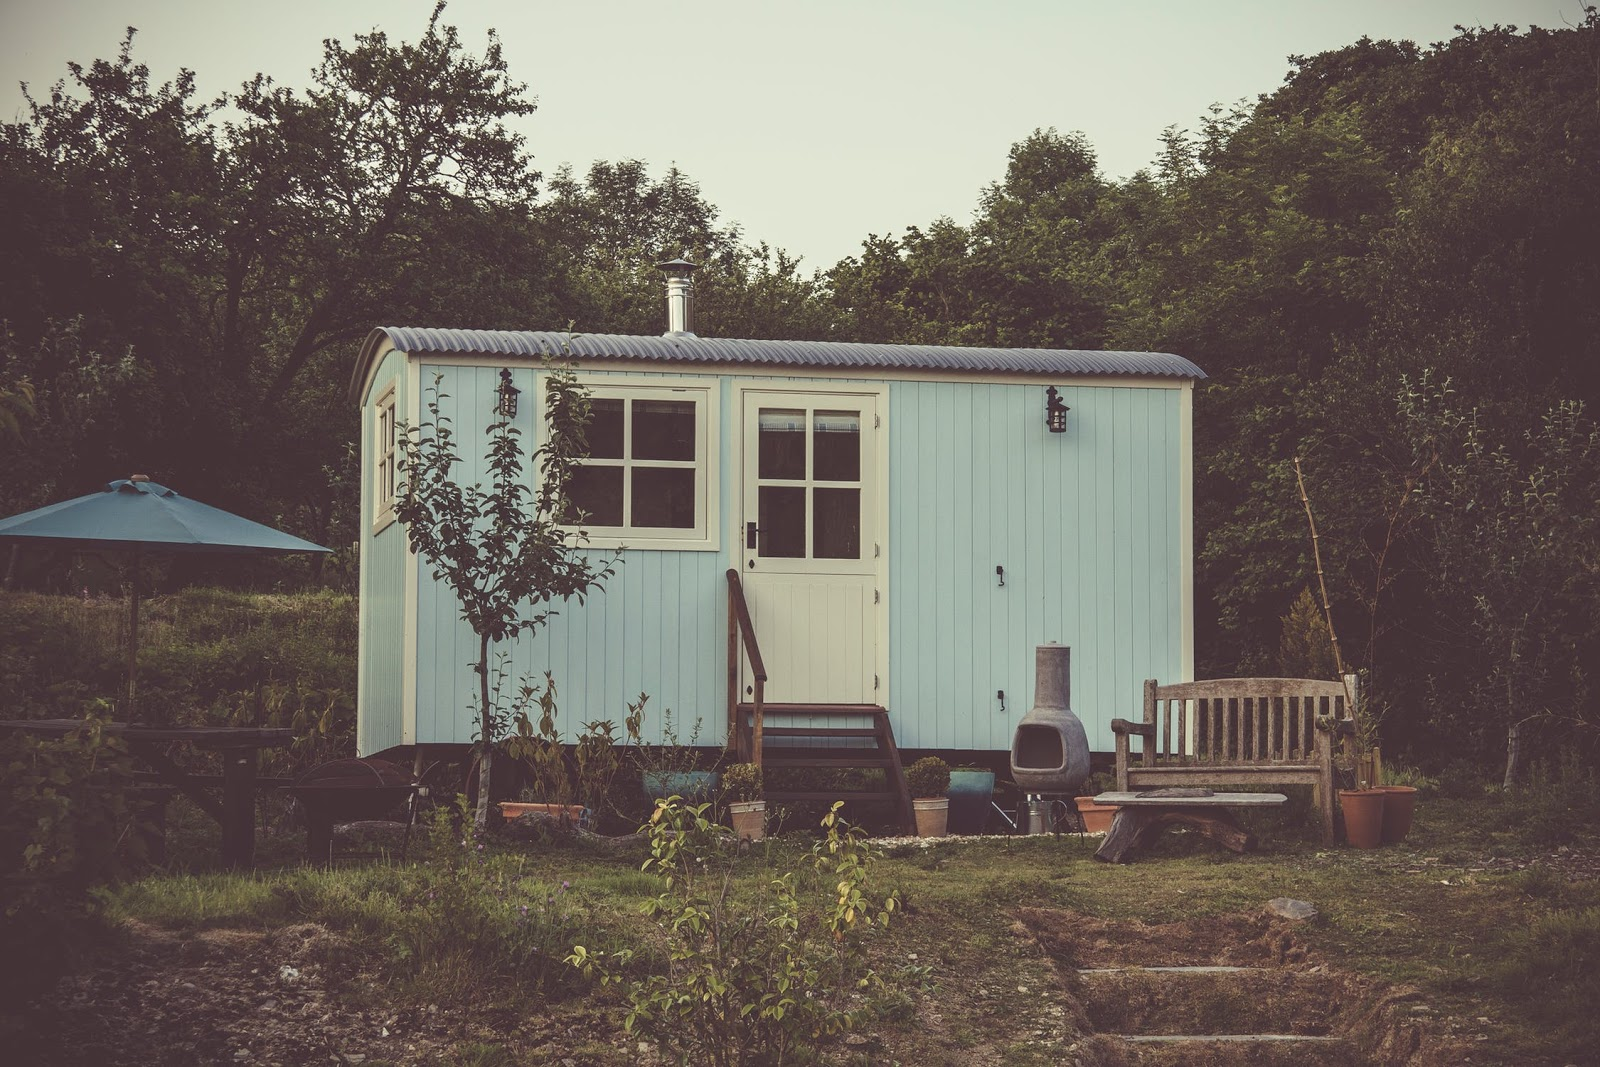 Tiny house appliances: a small blue house surrounded by trees